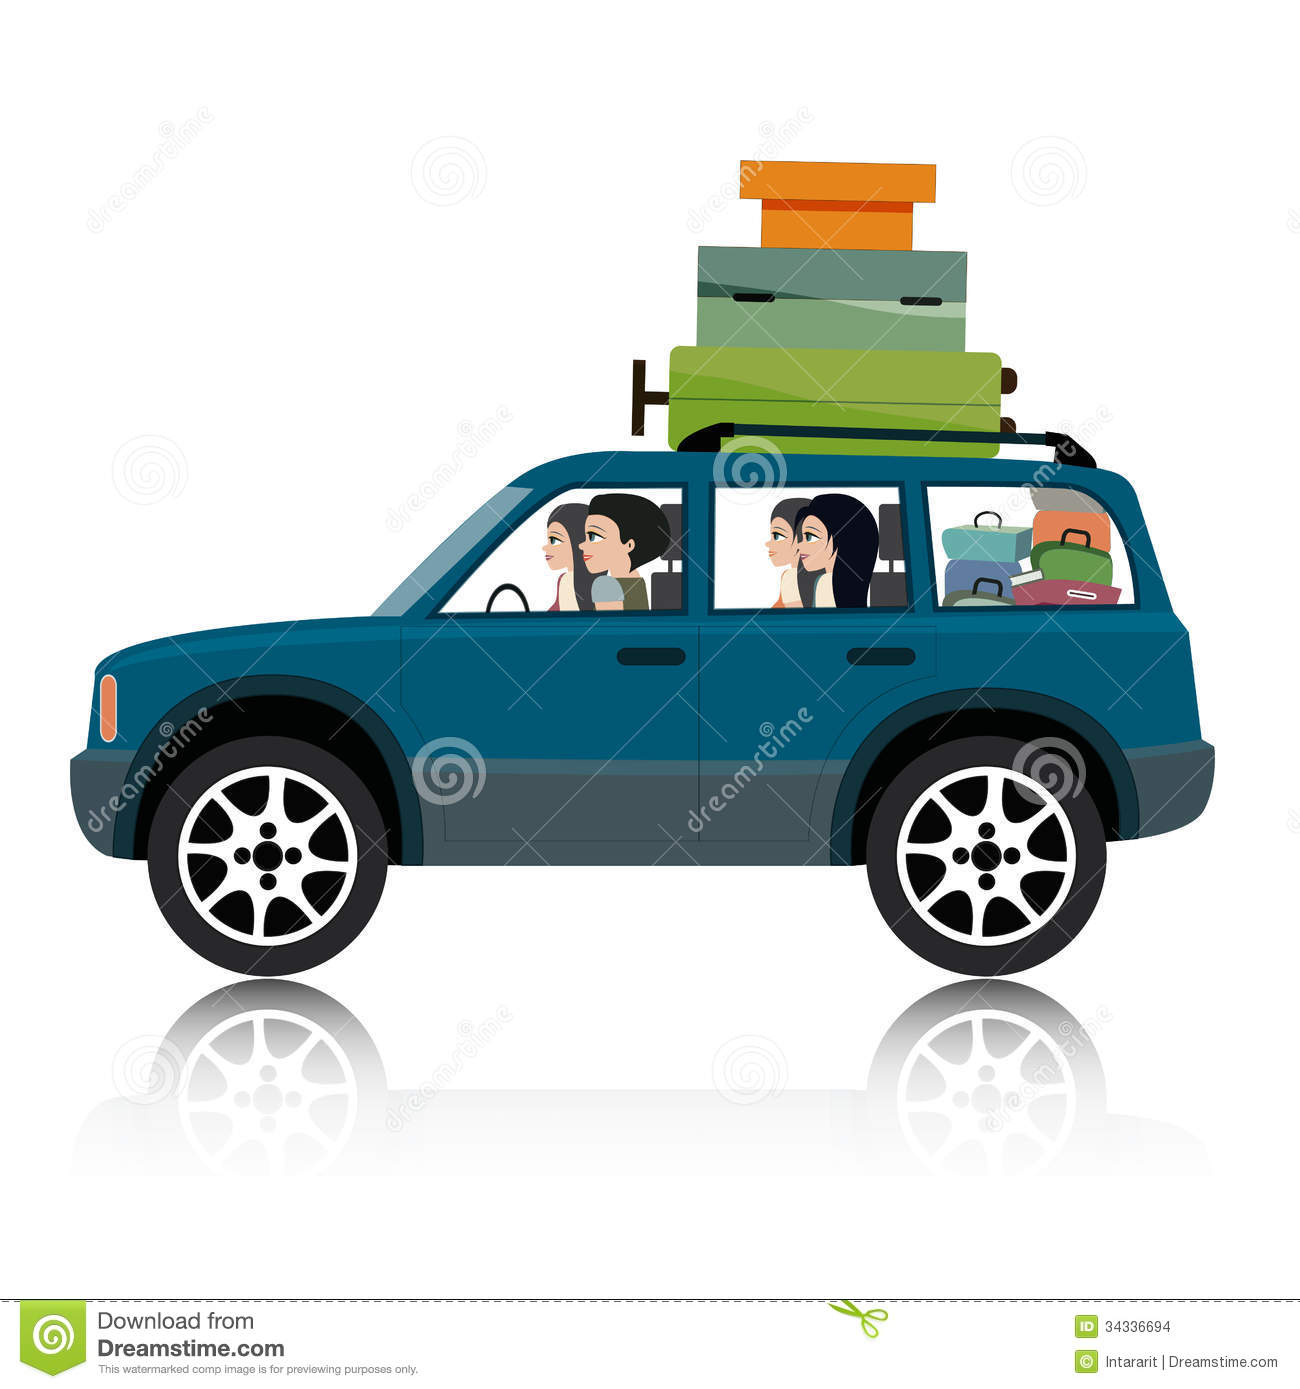 How To Drive With Luggage On Top Of Car